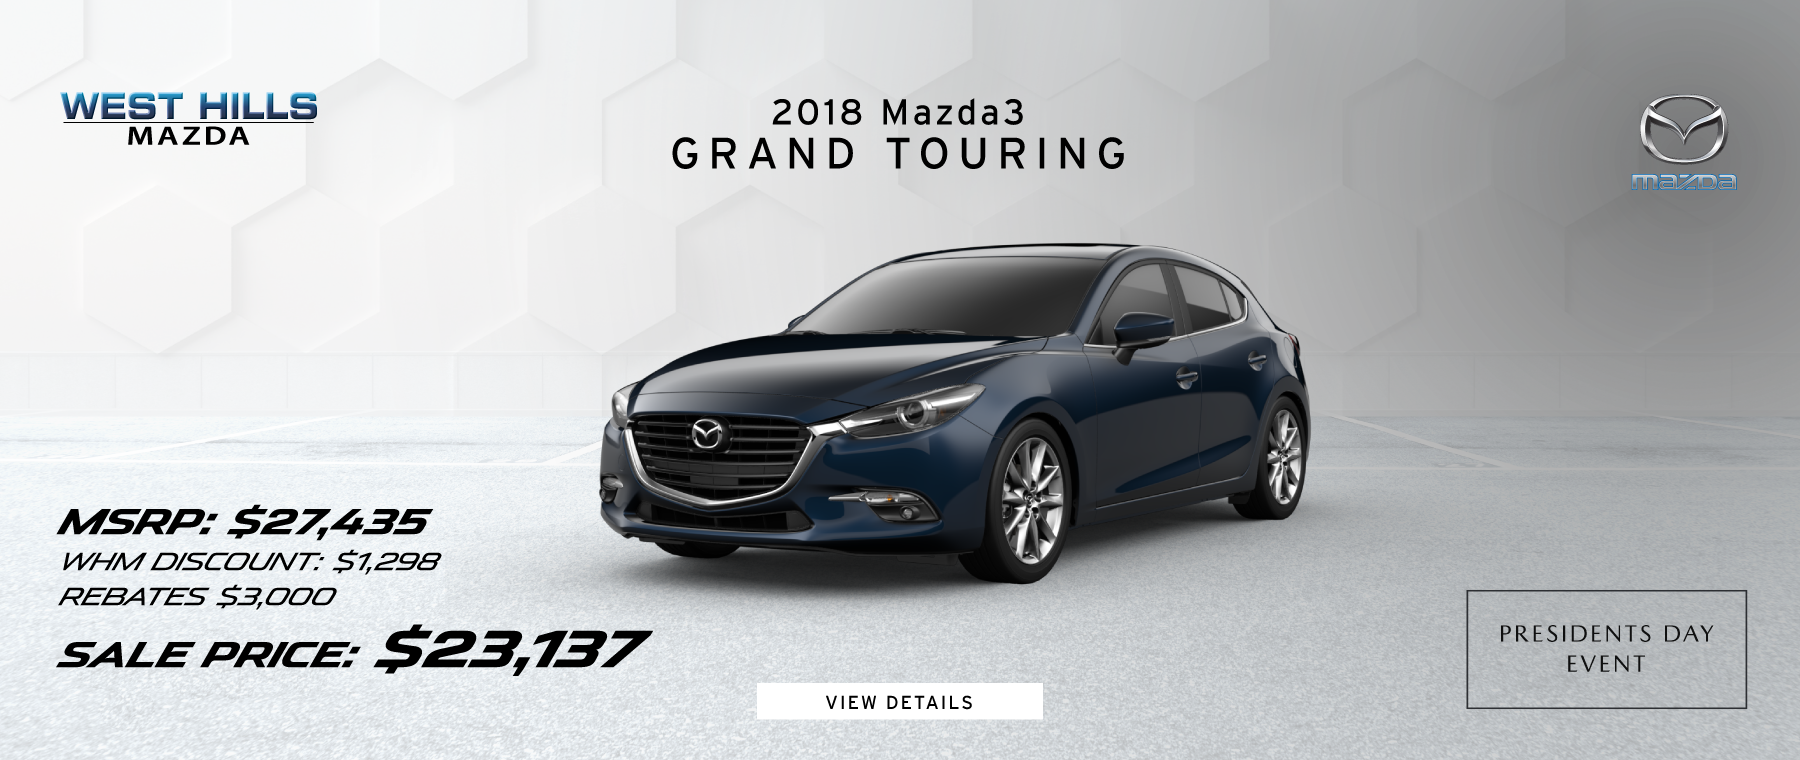 2018 Mazda3 Grand Touring MSRP: $27,435 WHM Discount: $1,298 Rebates: $3,000 Sale Price: $23,137 *Valid on 2018 Mazda3 Grand Touring. Valid on VIN: 3MZBN1M3XJM215708. MSRP is $27,435. $1,298 Dealer Discount and $3,000 Rebate. Sale Price is $23,137. Subject to credit approval. Down payment and monthly payment may vary. Not all will qualify for rebate. Excludes state and local taxes, tags, registration and title, insurance and dealer charges. A negotiable dealer documentary service fee of up to $150 may be added to the sale price or capitalized cost. Limit one discount per vehicle per customer. See dealer for complete details. Offer Expires: 2/28/2019.